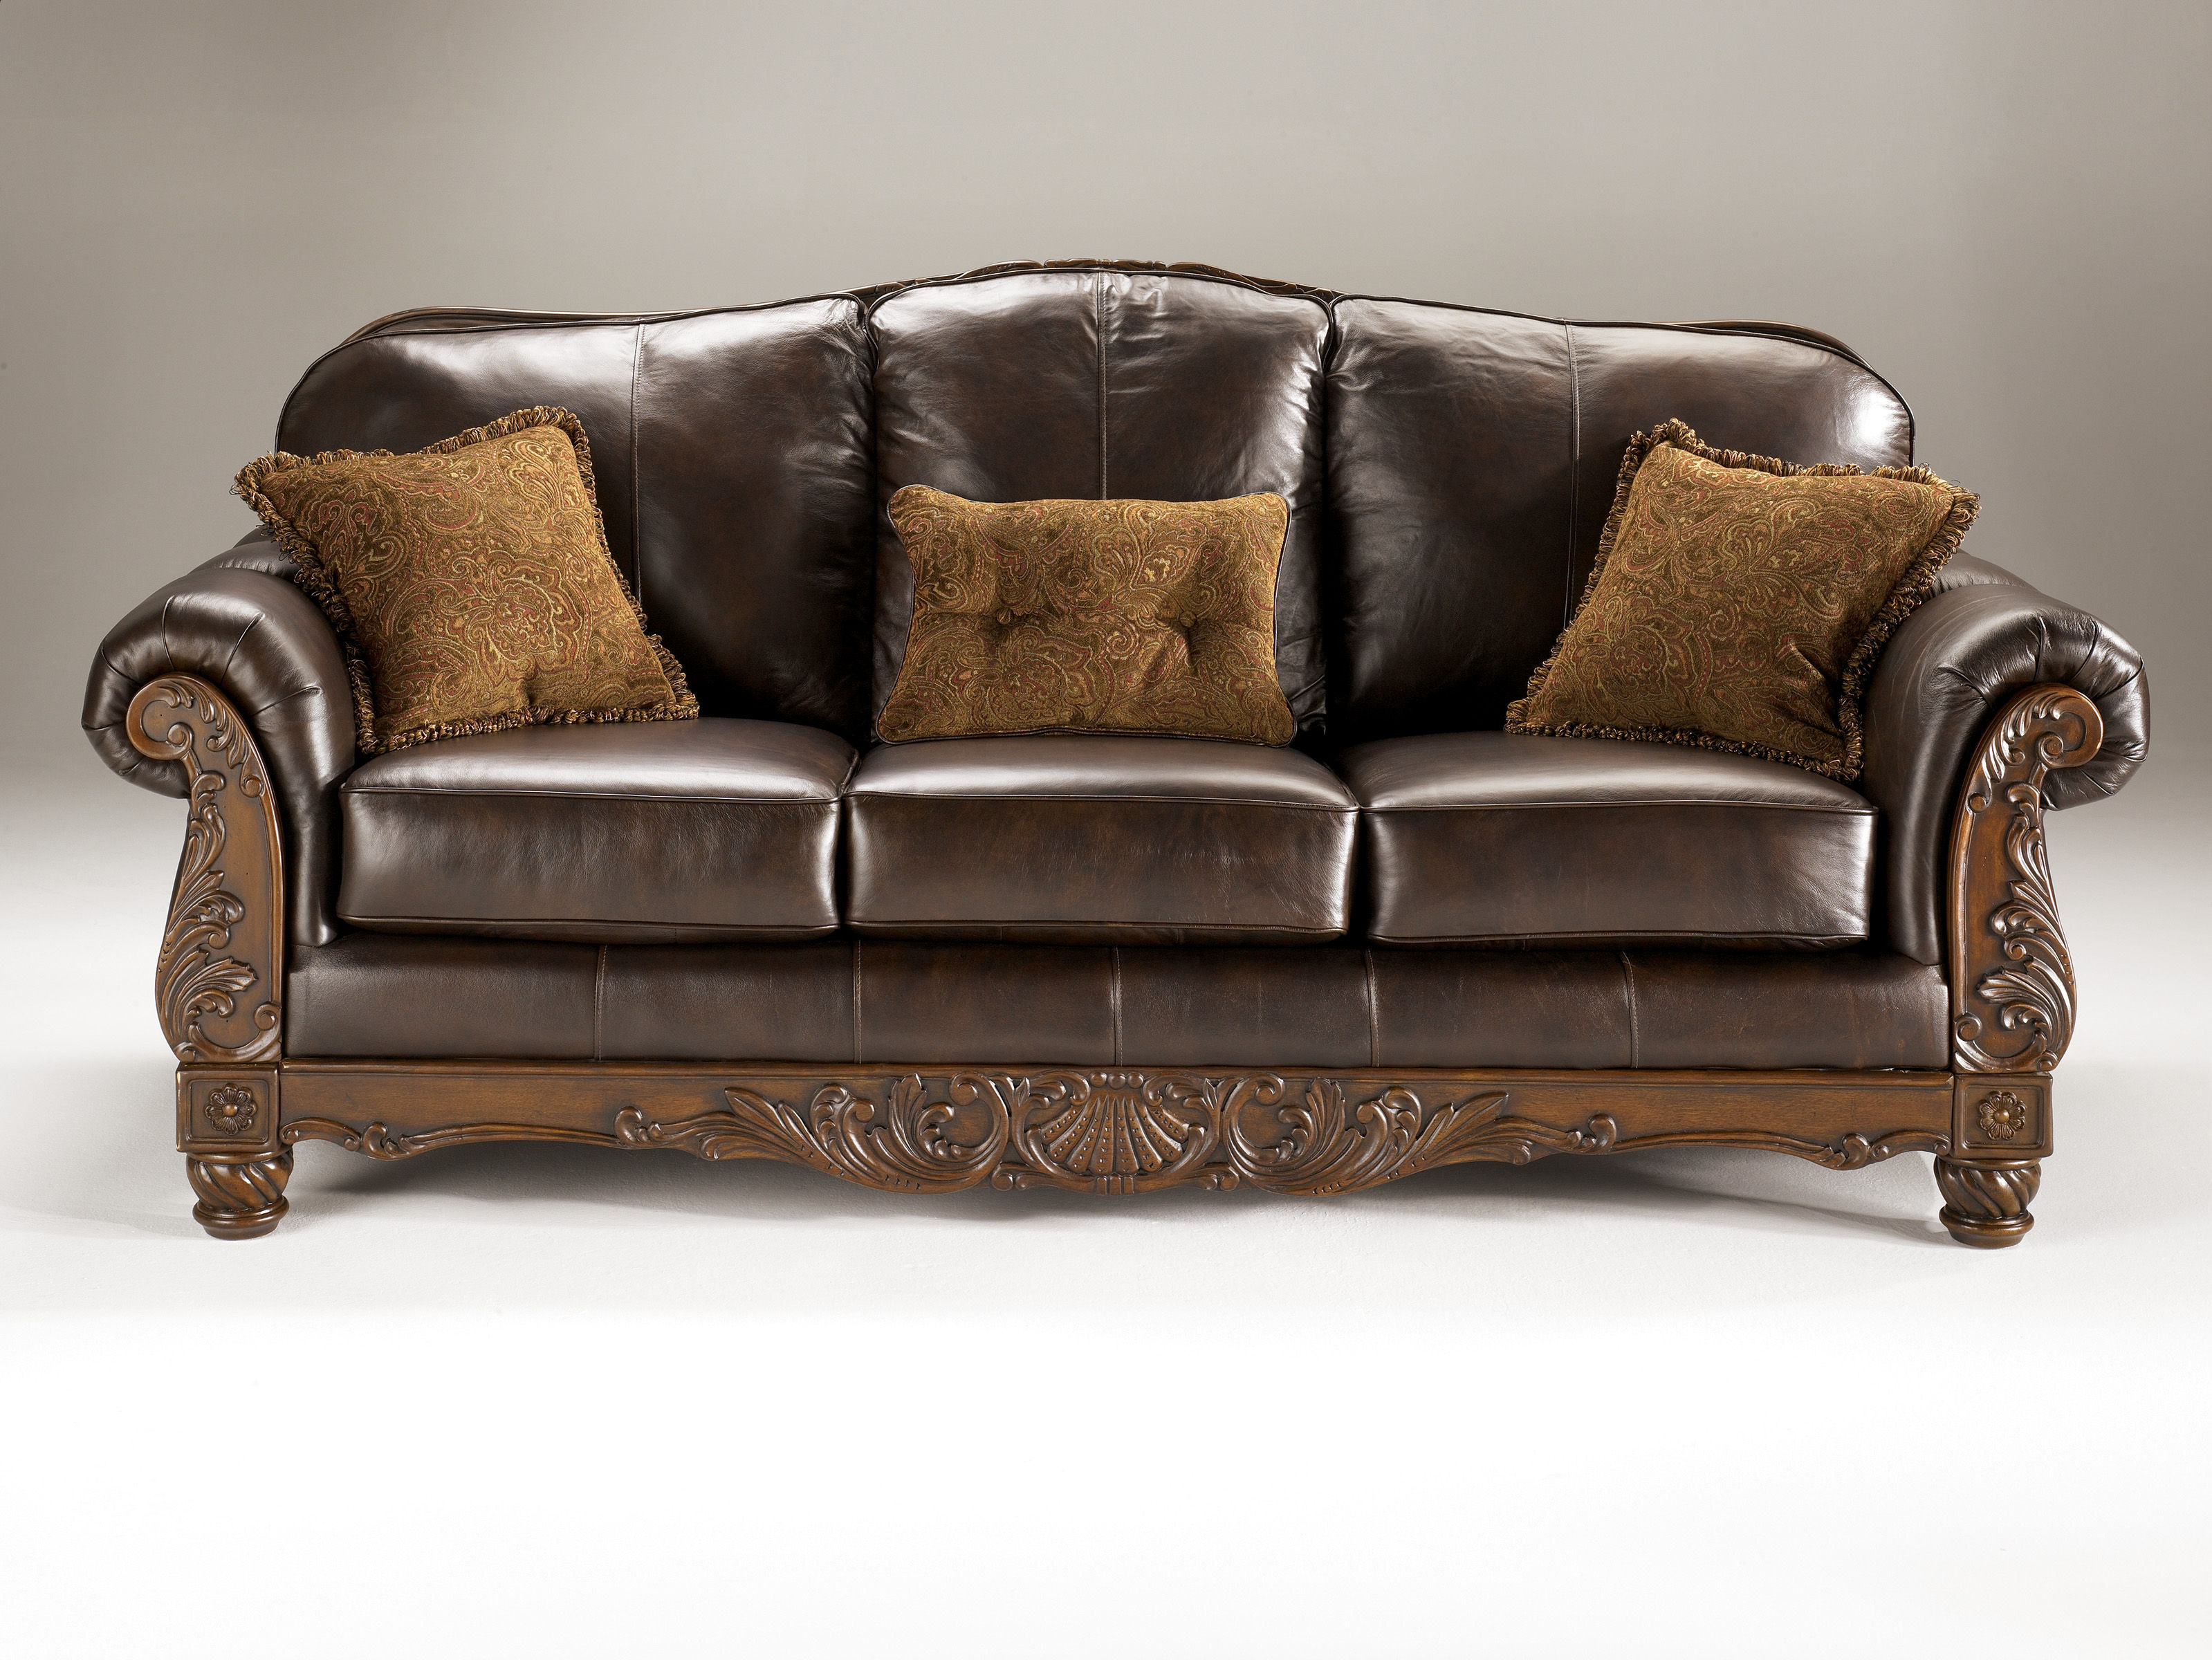 Ashley Furniture North Shore Sofa The Classy Home